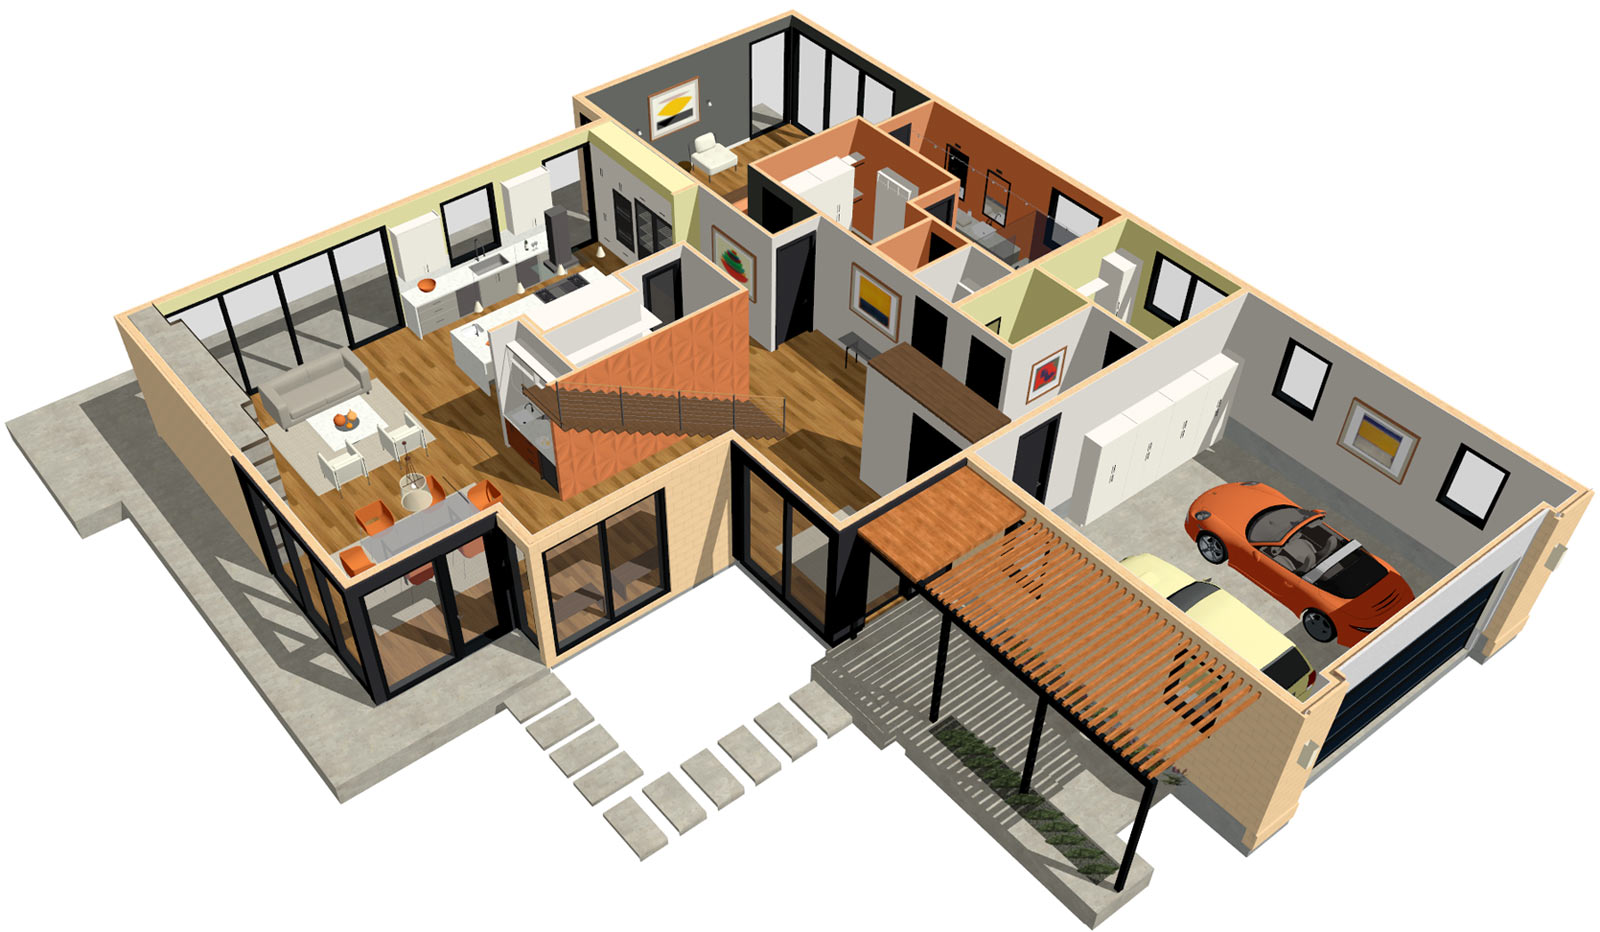 Exceptionnel Modern Home With 3D Dollhouse Overview